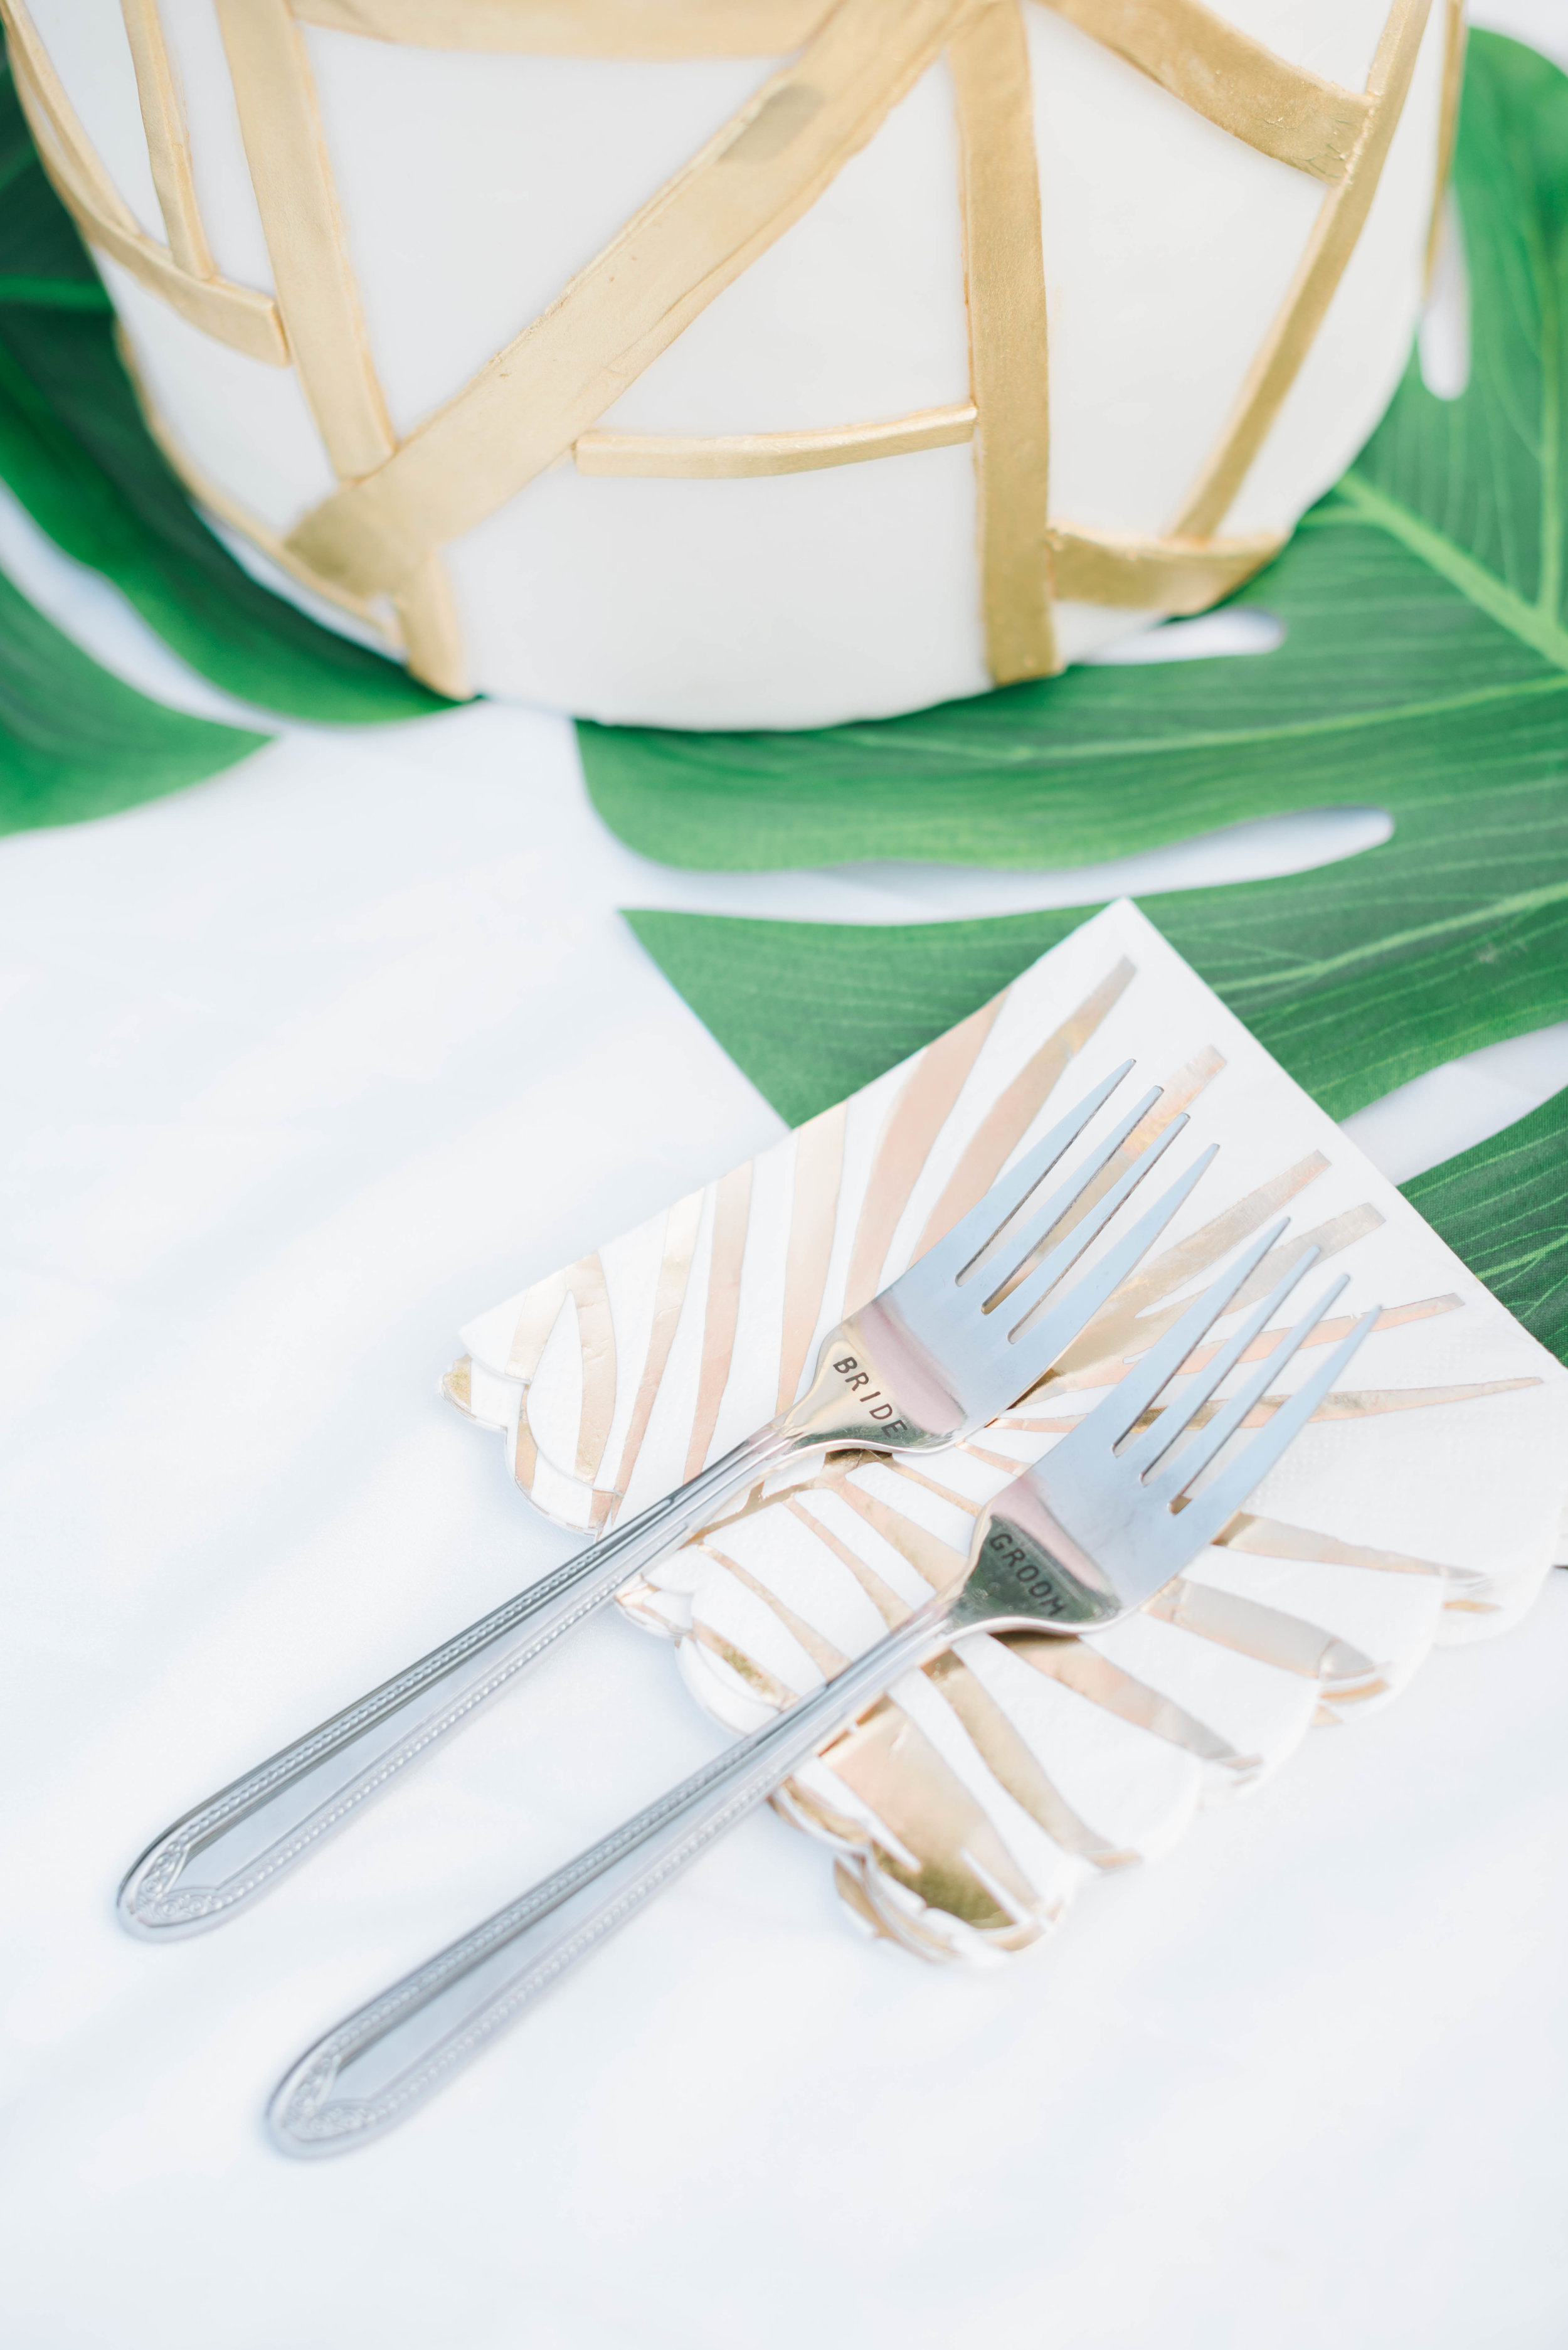 southern-maryland-tropical-wedding-rattan-bar-cart-palm-leaf-cake-sprinklewithkindness